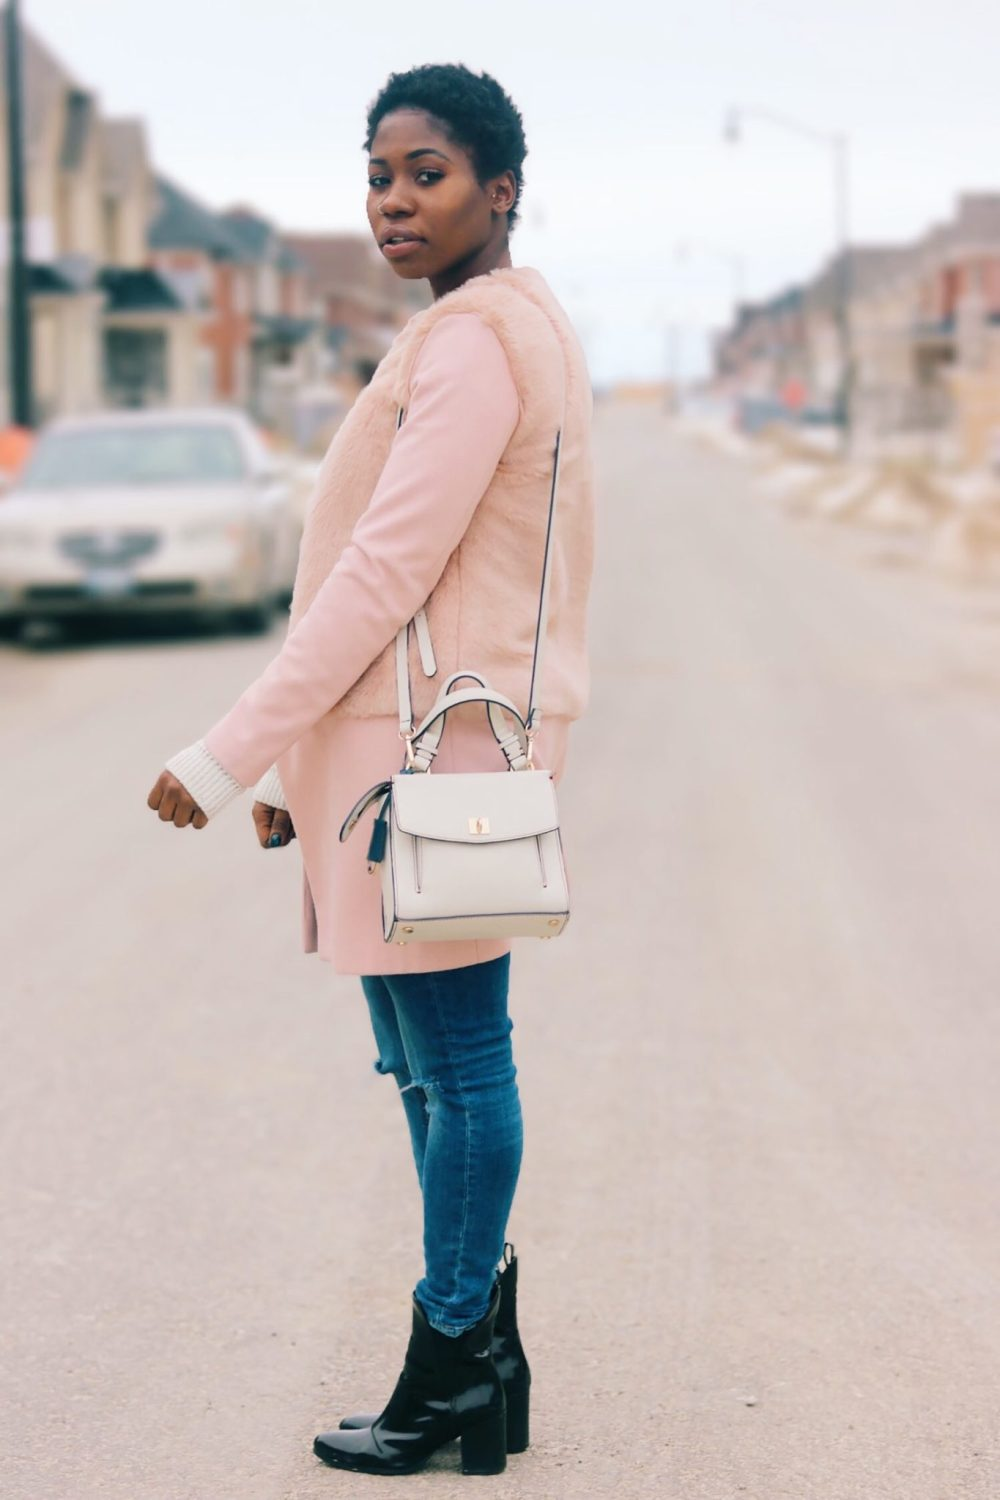 style-synopsis-vibrant-winter-coat